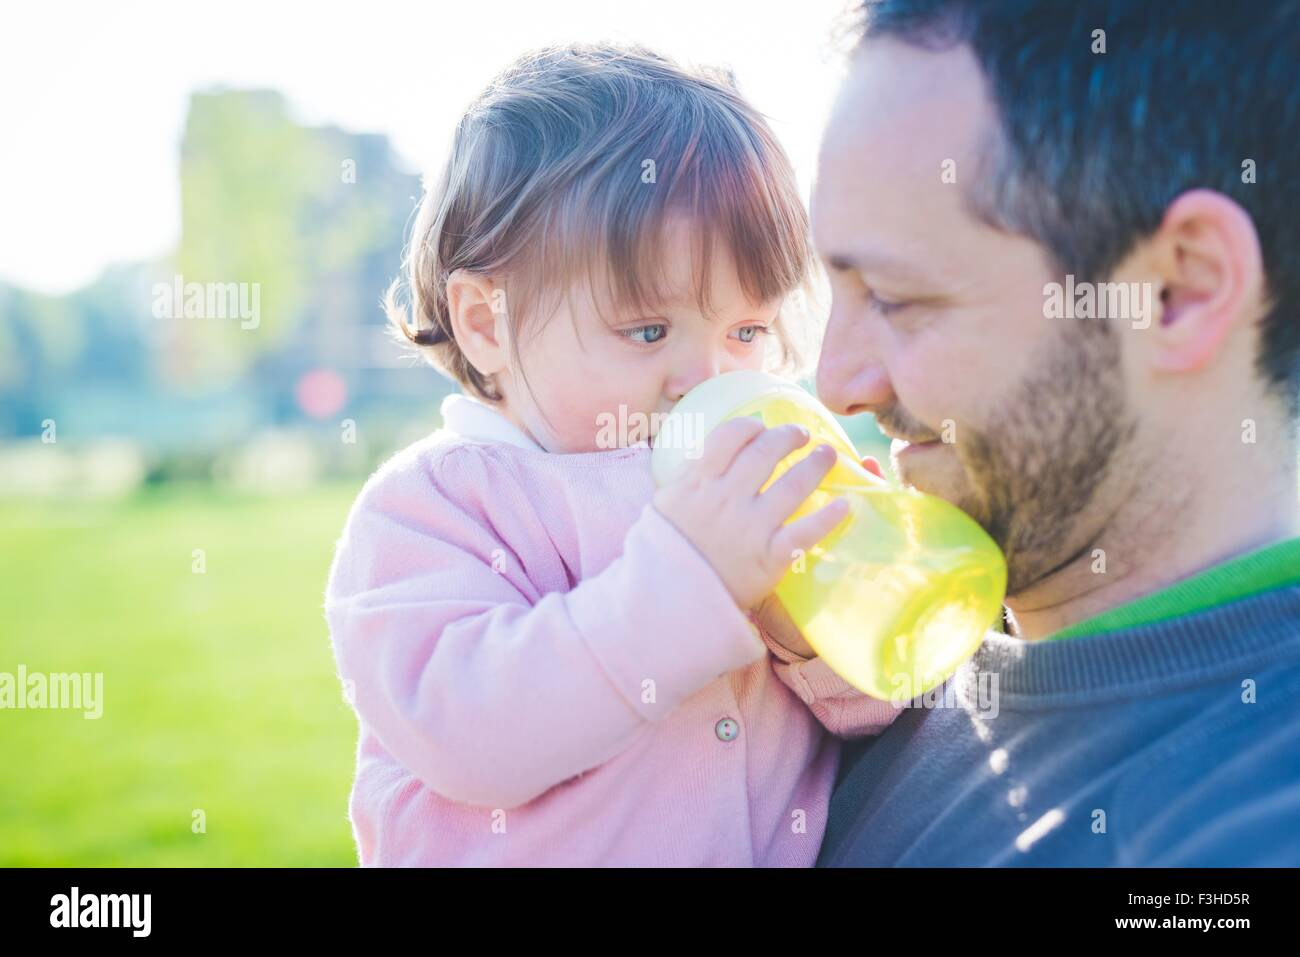 Female toddler with father drinking baby bottle in park - Stock Image